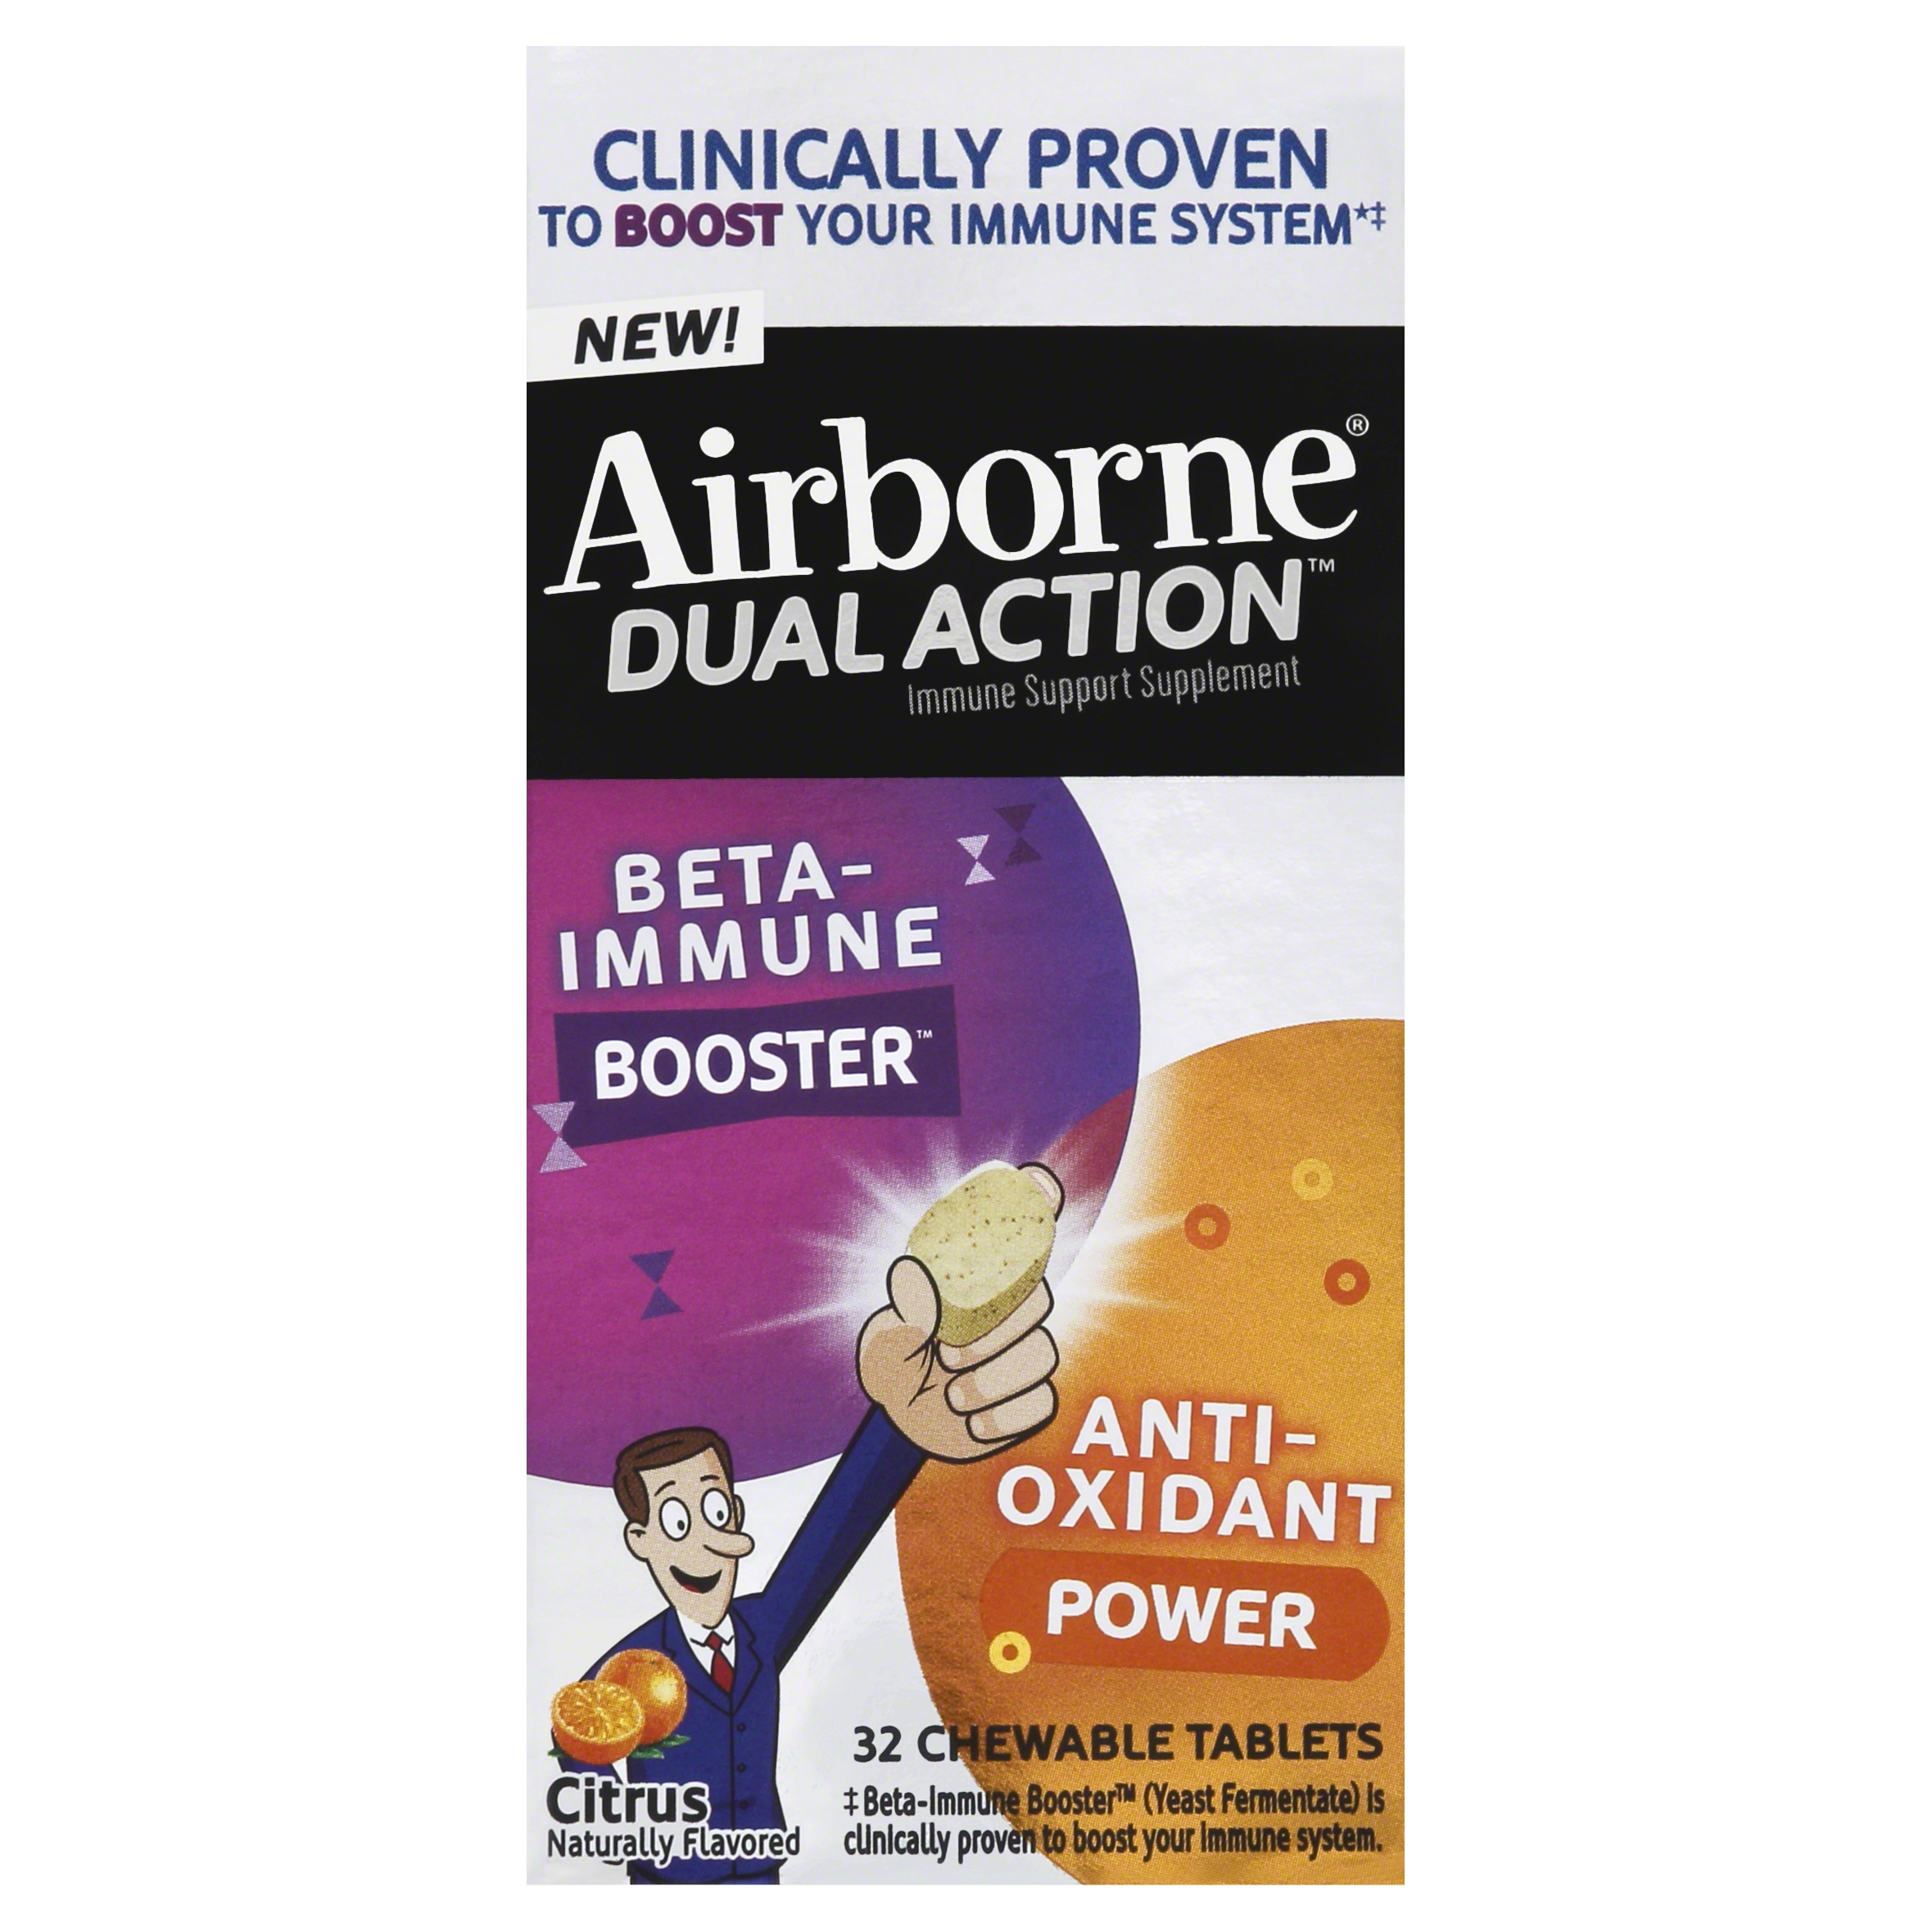 Airborne Dual Action Citrus Chewable Tablets, 32ct - 500mg of Vitamin C & Beta Immune Booster